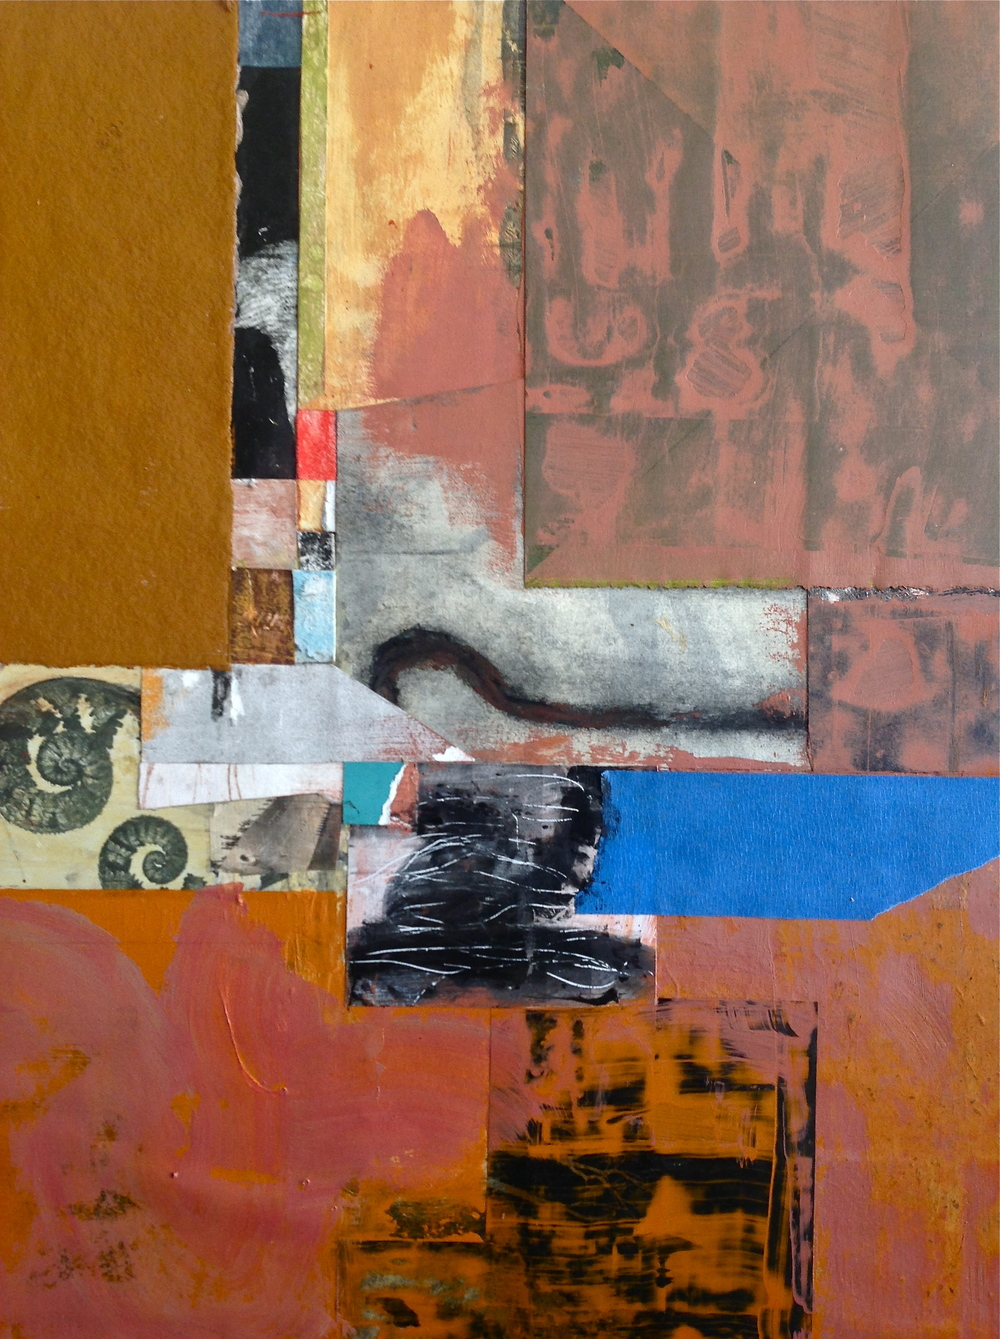 Mark Eanes, Untitled XII, 2013. Mixed media on panel, 18 x 24 inches.